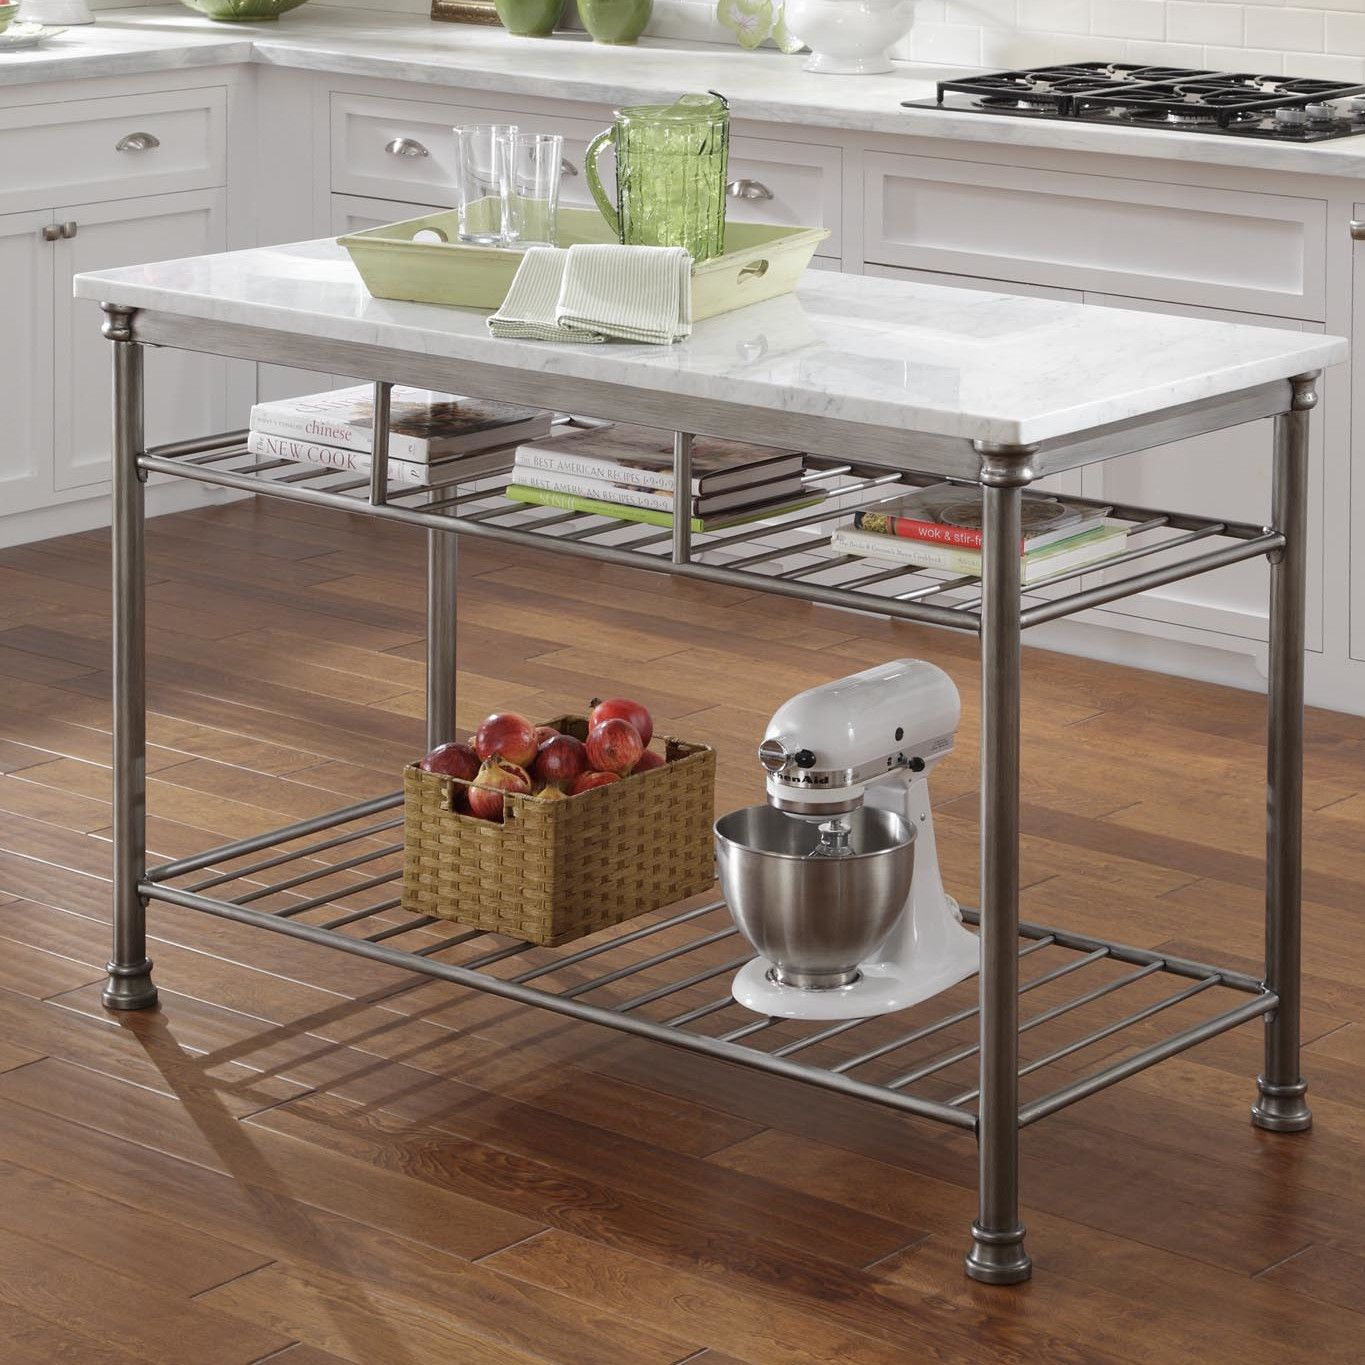 Home Styles Orleans Prep Table With Marble Top Kitchen Island Storage Freestanding Kitchen Island Freestanding Kitchen